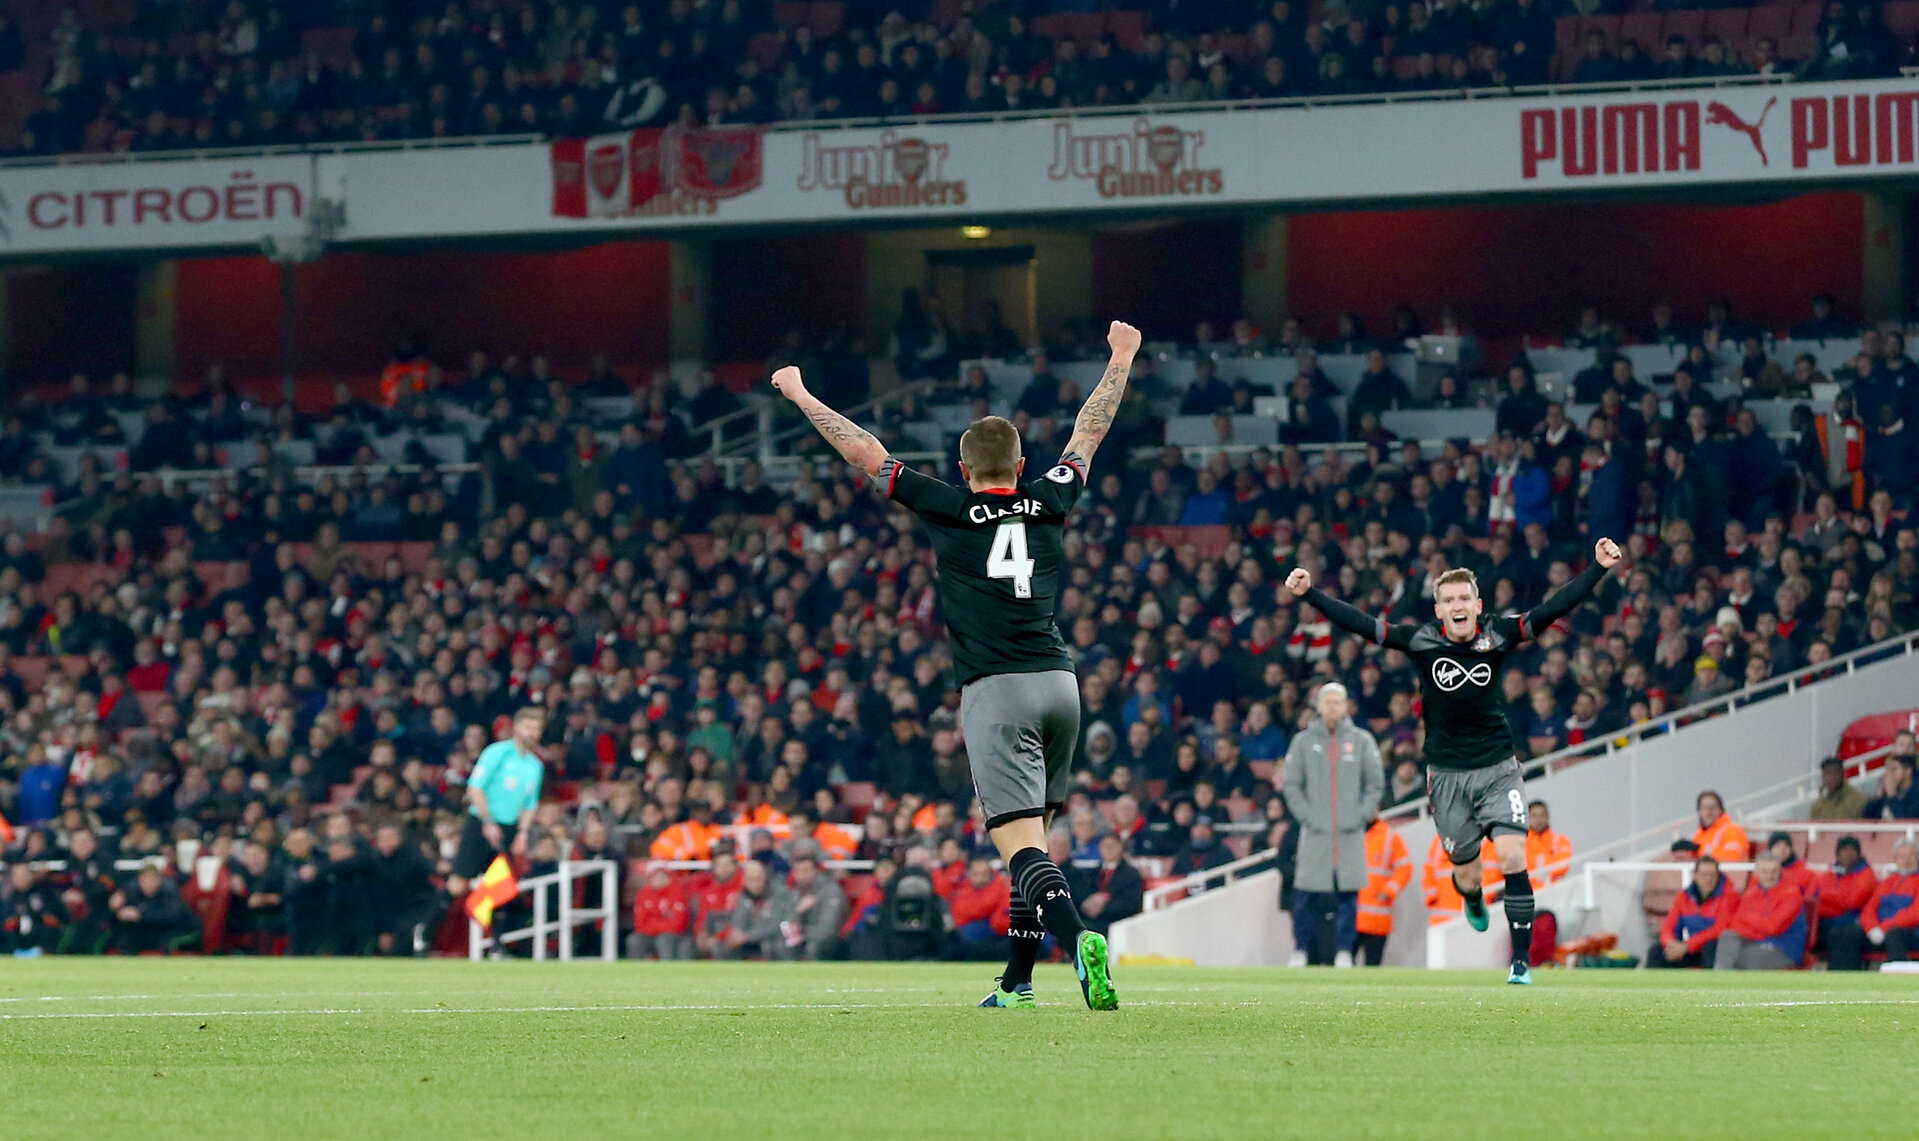 Jordy Clasie scores during the EFL Cup match between Arsenal and Southampton at the Emirates Stadium, London, England on 30 November 2016. Photo by Matt  Watson/SFC/Digital South.